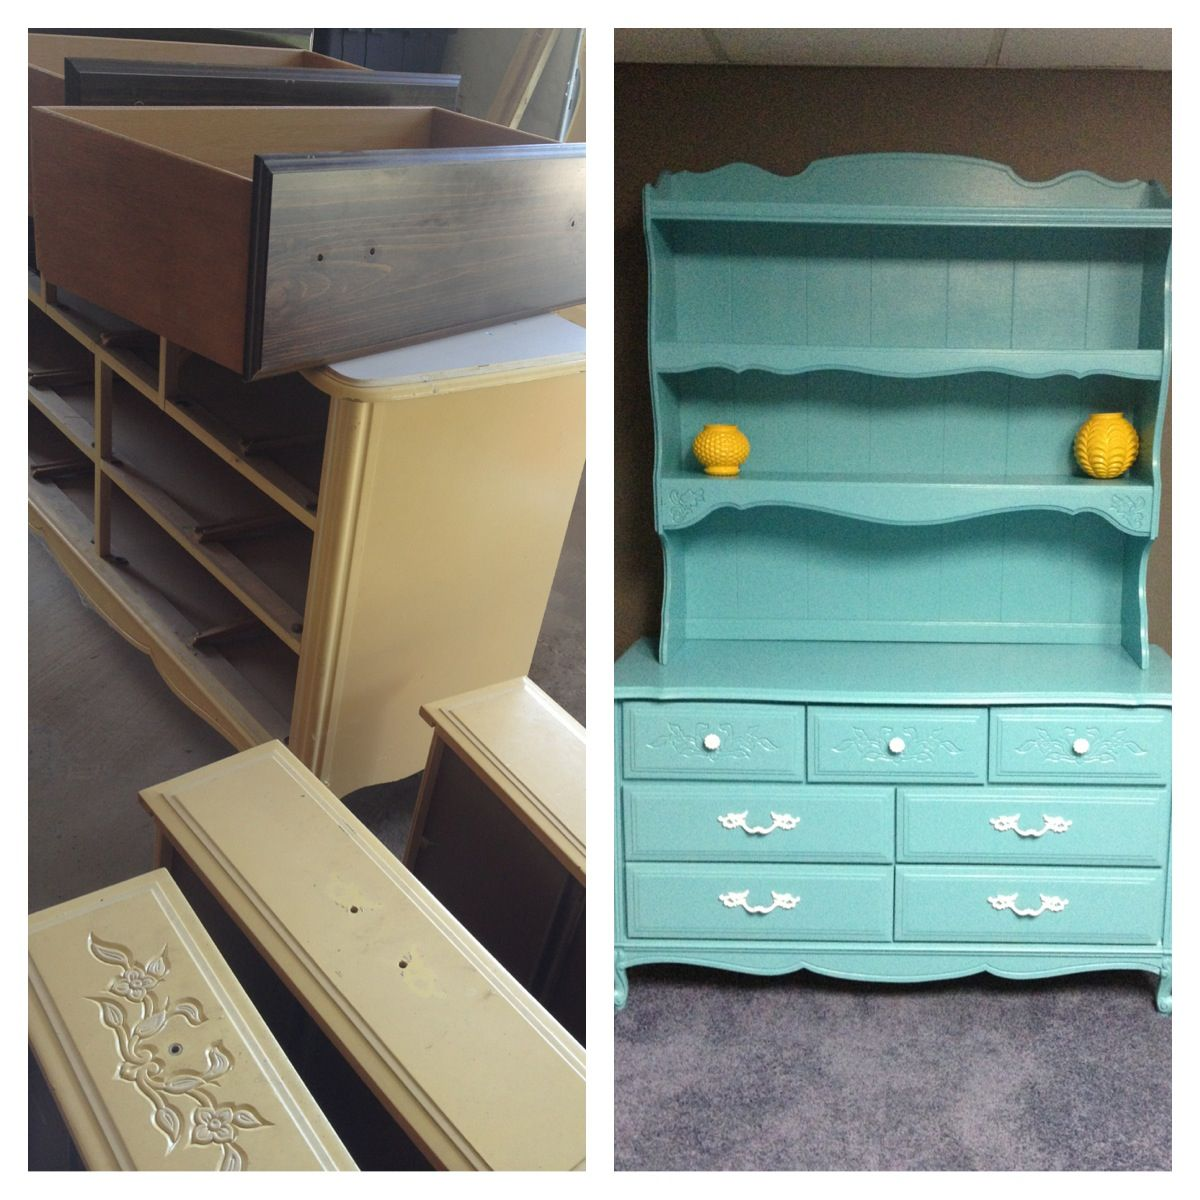 Pin By Kacie Wilcox On Creative Bug Give These A Whirl Flipping Furniture Diy Furniture Flip Loft Furniture